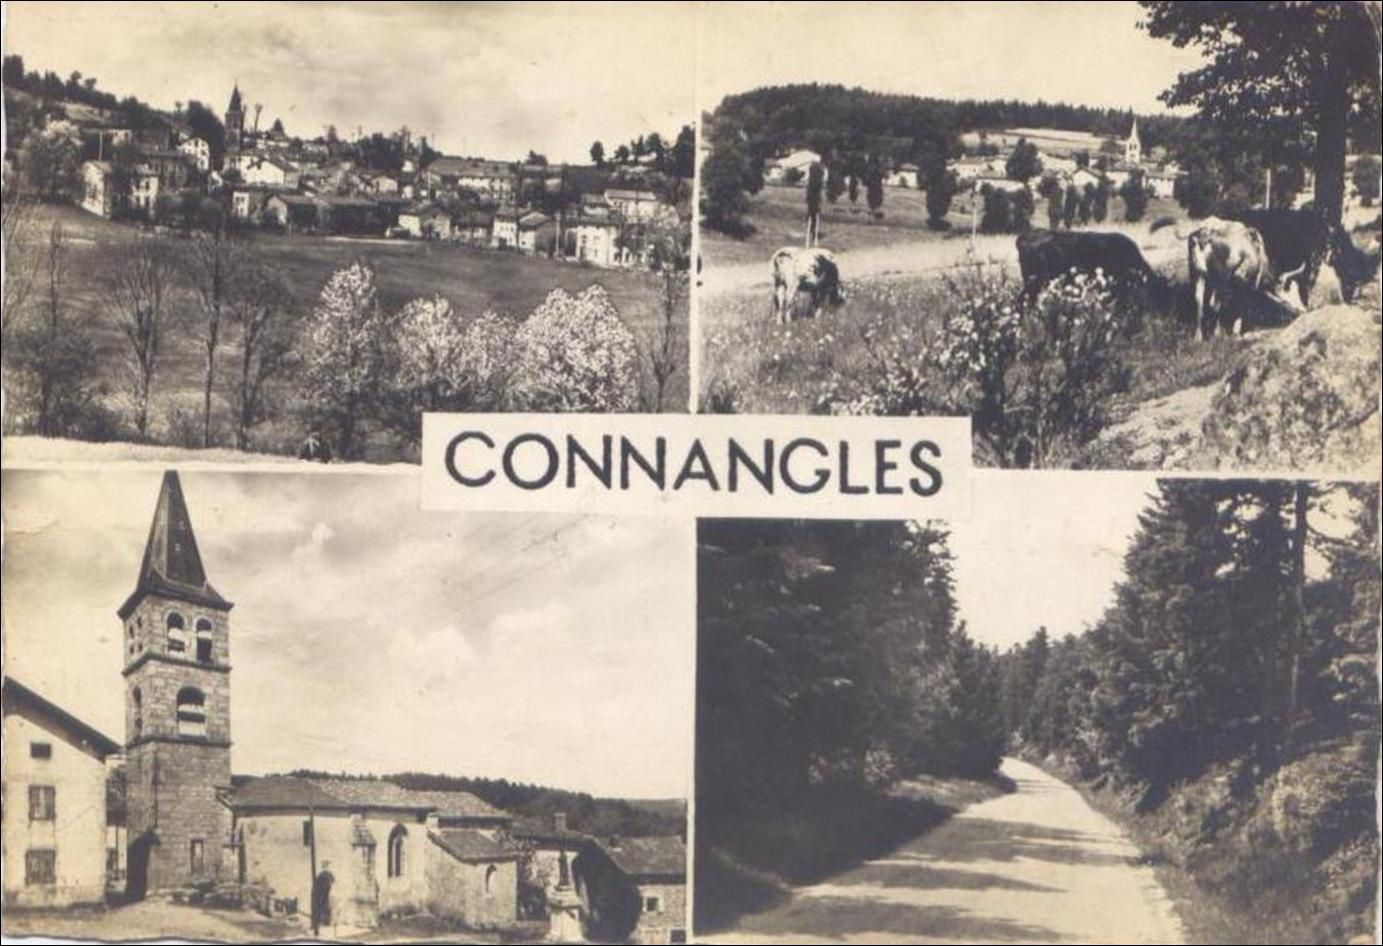 Connangles